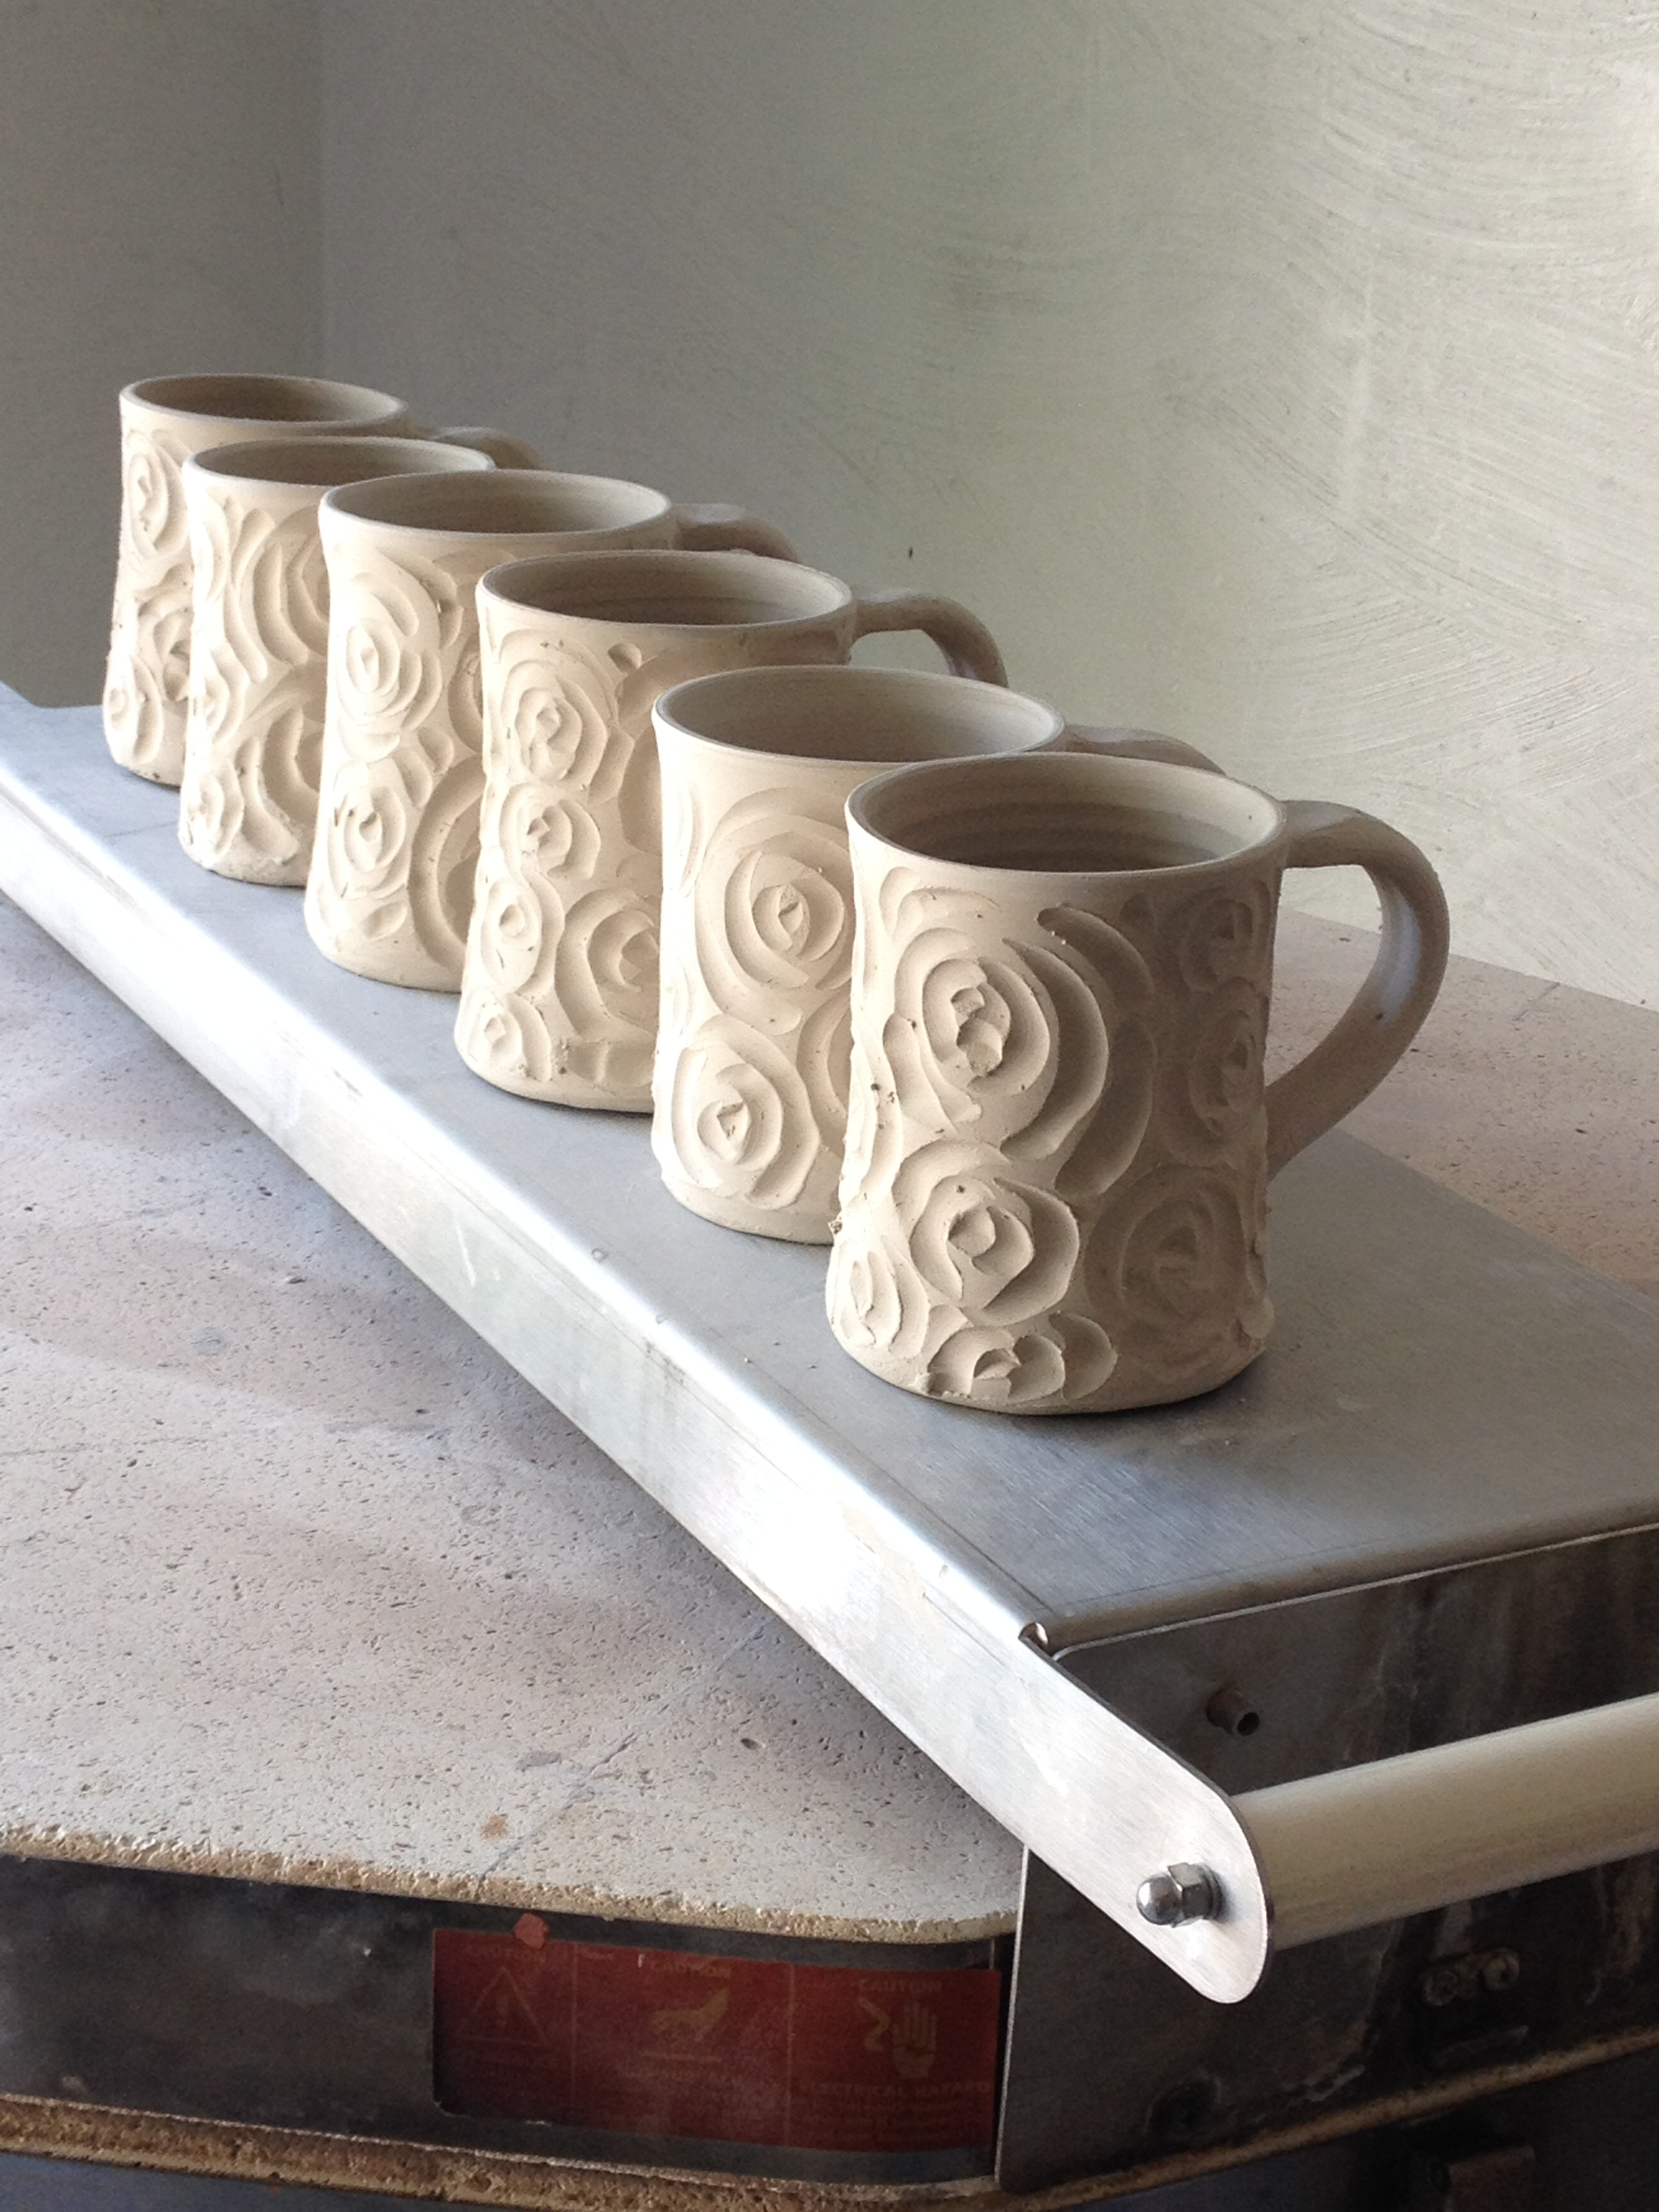 Carved mugs drying.jpg